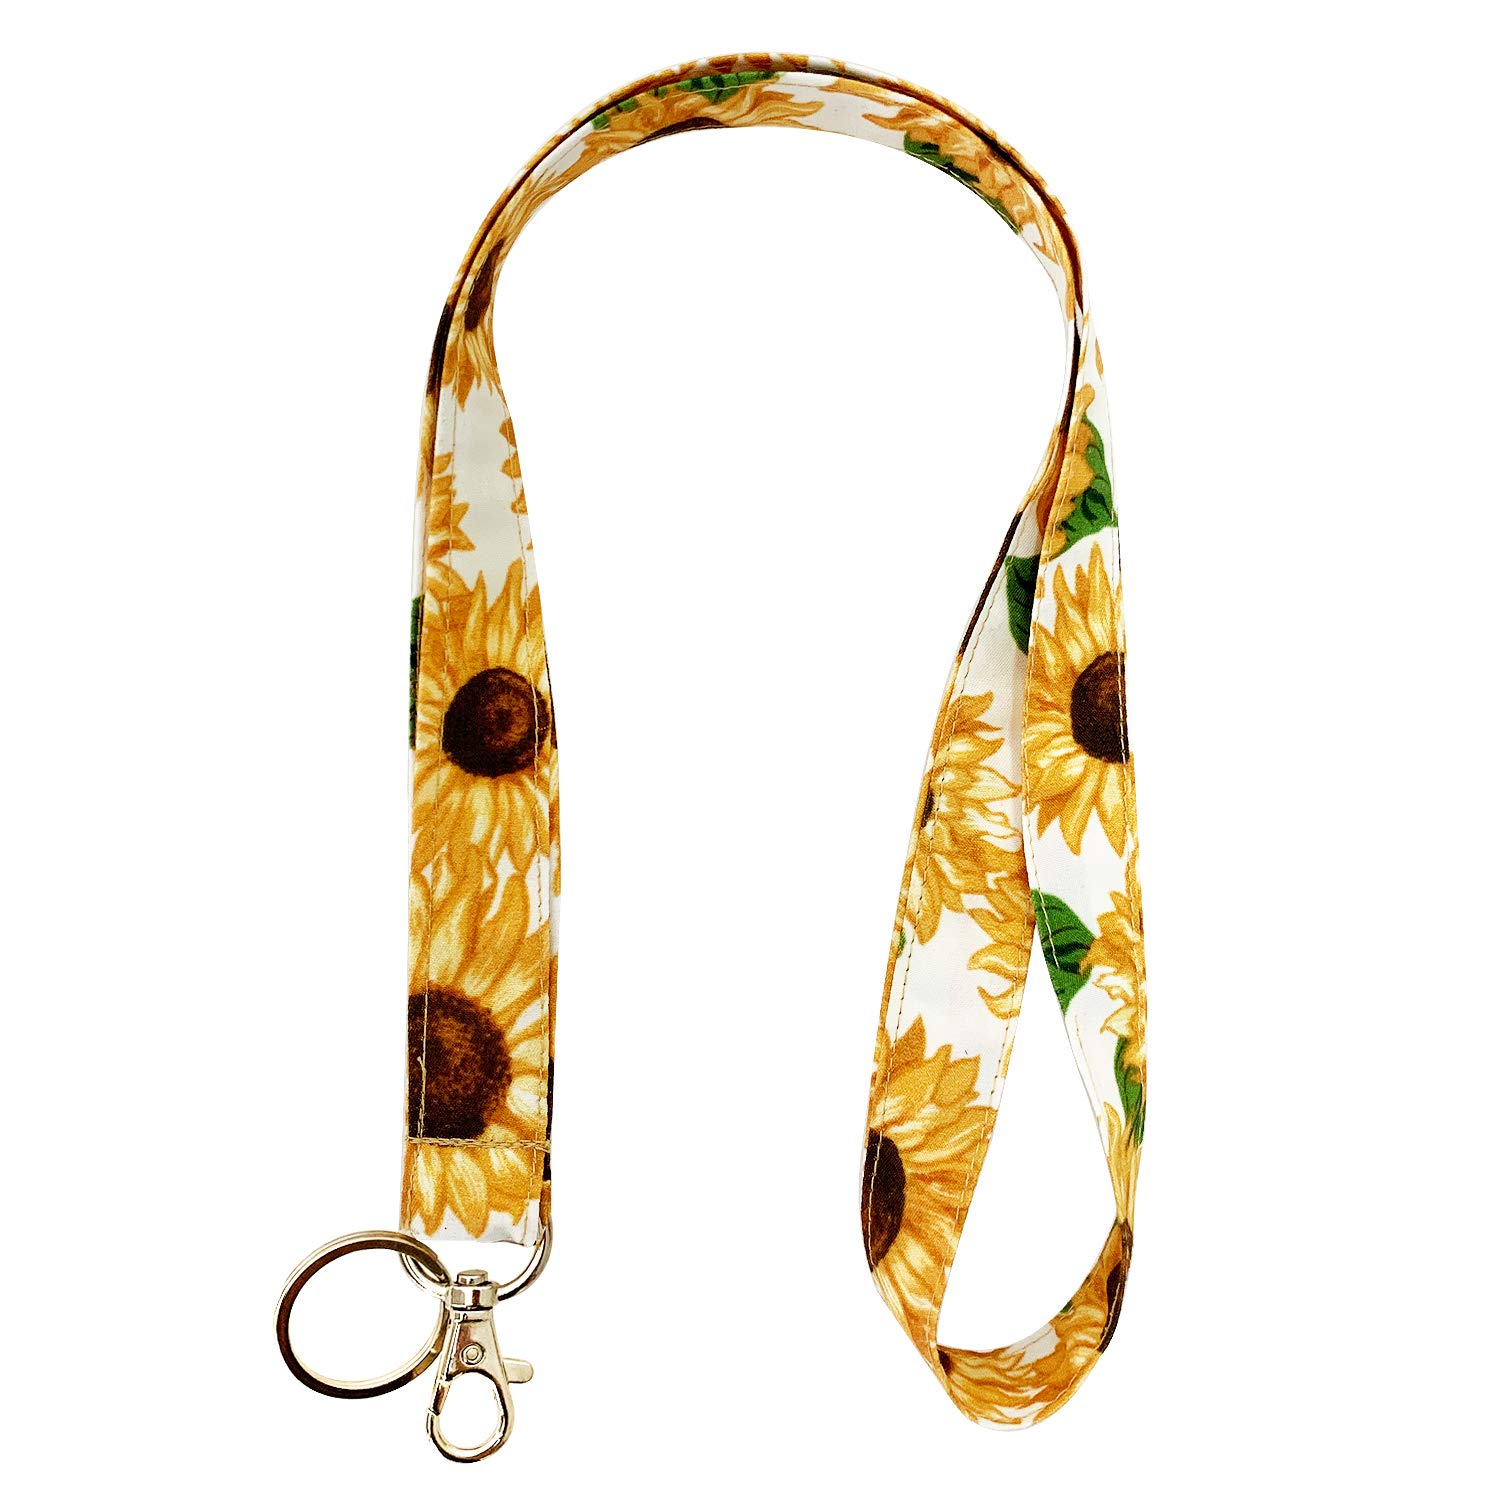 Celokiy Cotton Fabric Sunflower Lanyard Neck Strap with Swivel Lobster Clasp,Cute Boho Floral Baby's Breath Lanyards for Keys,Id Badges,Card Holder,Cell Phone,Keychain,Wallet,Teacher,Women,Girls